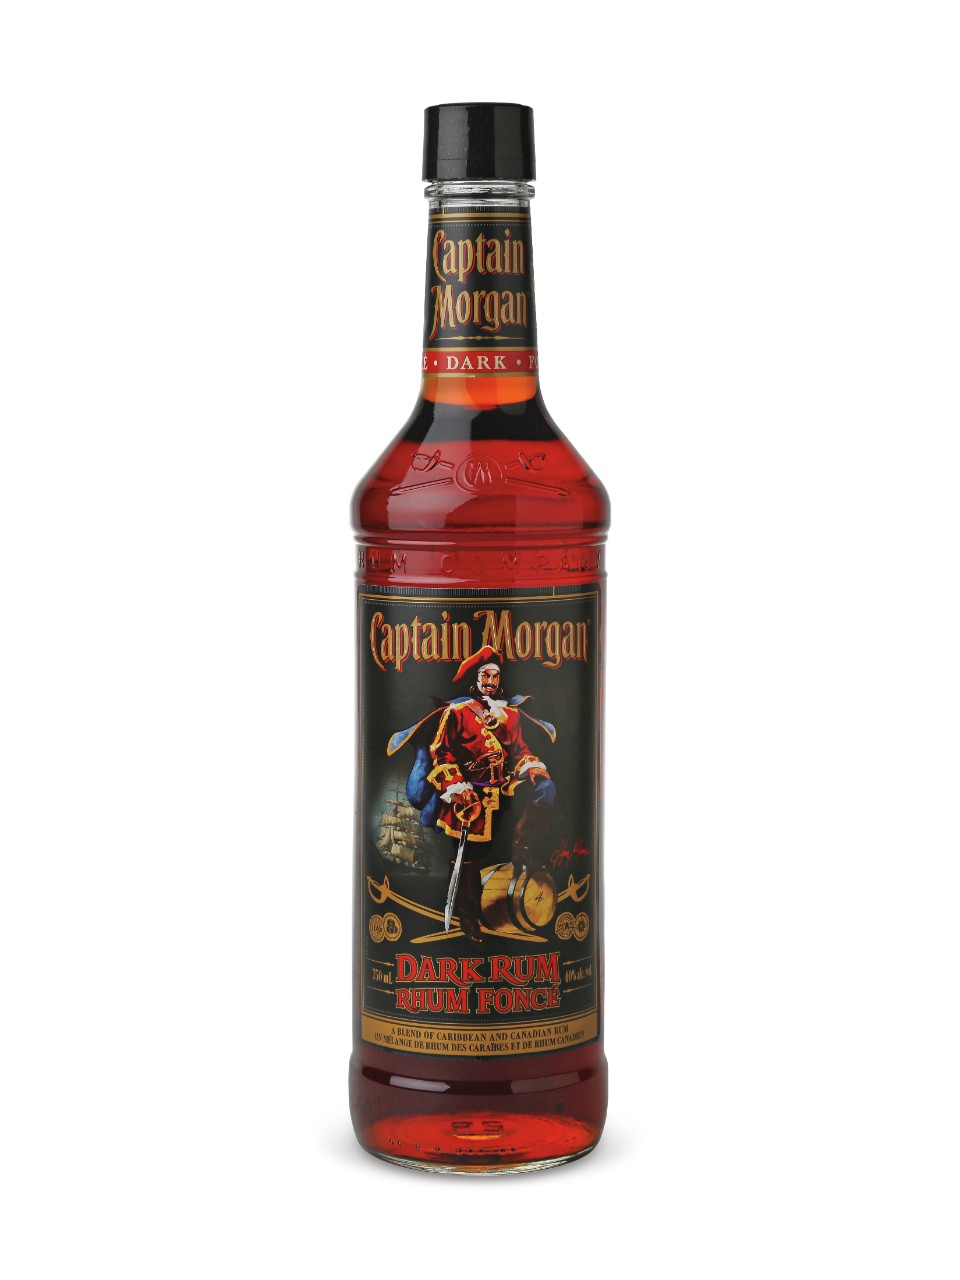 Rum Captain Morgan - reviews of a truly pirated drink 11